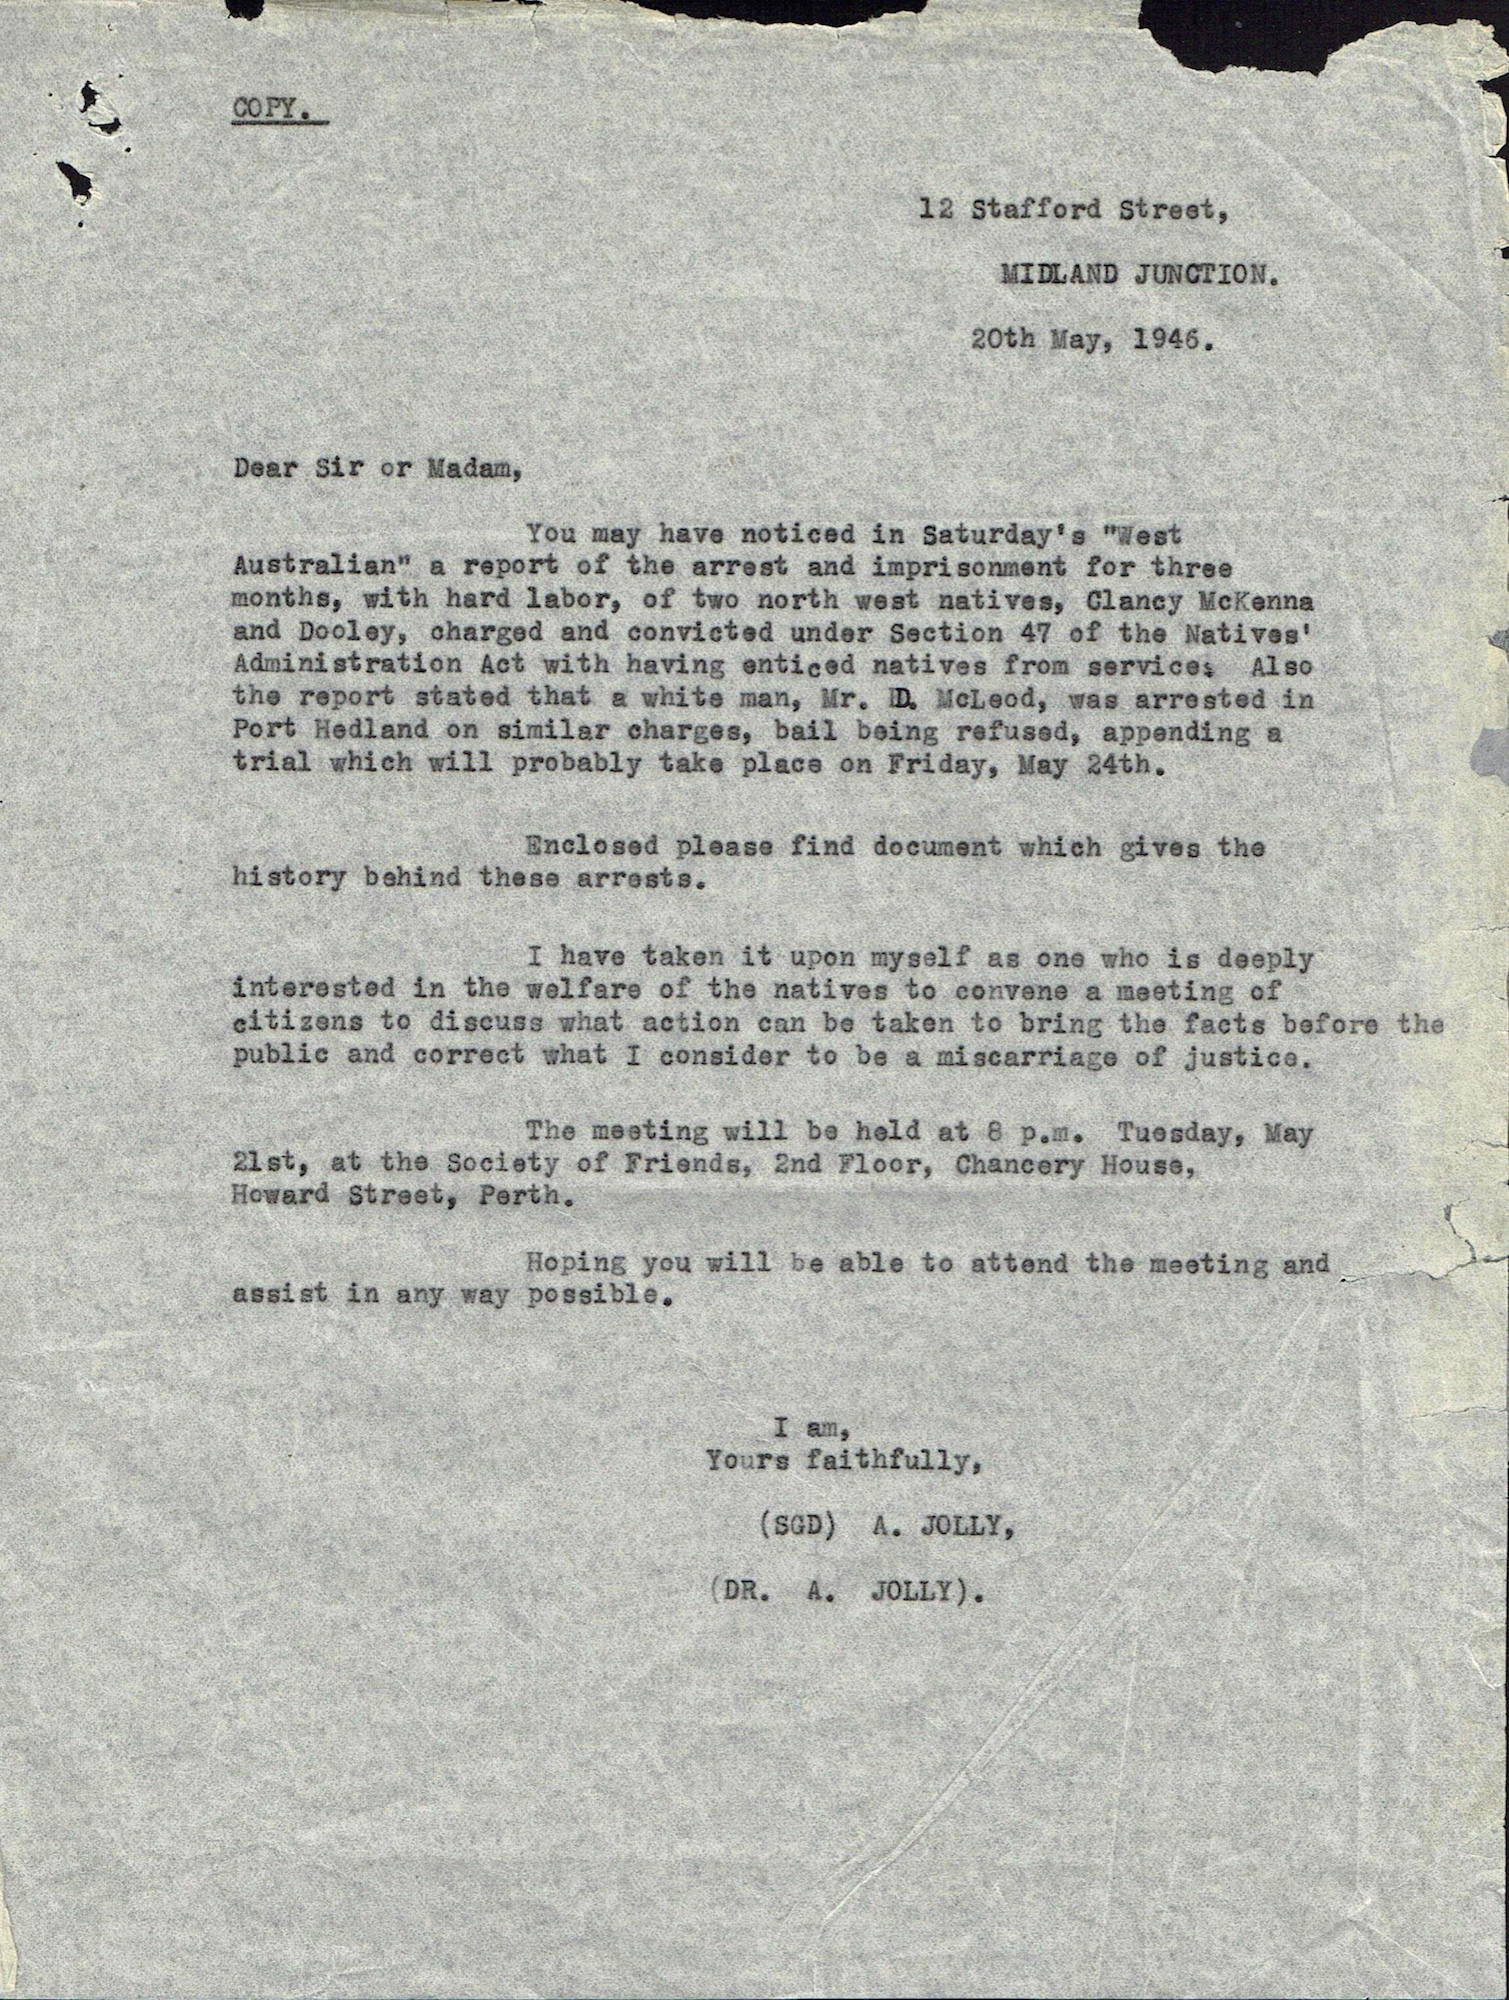 Alec Jolly, circular letter, 20 May 1946